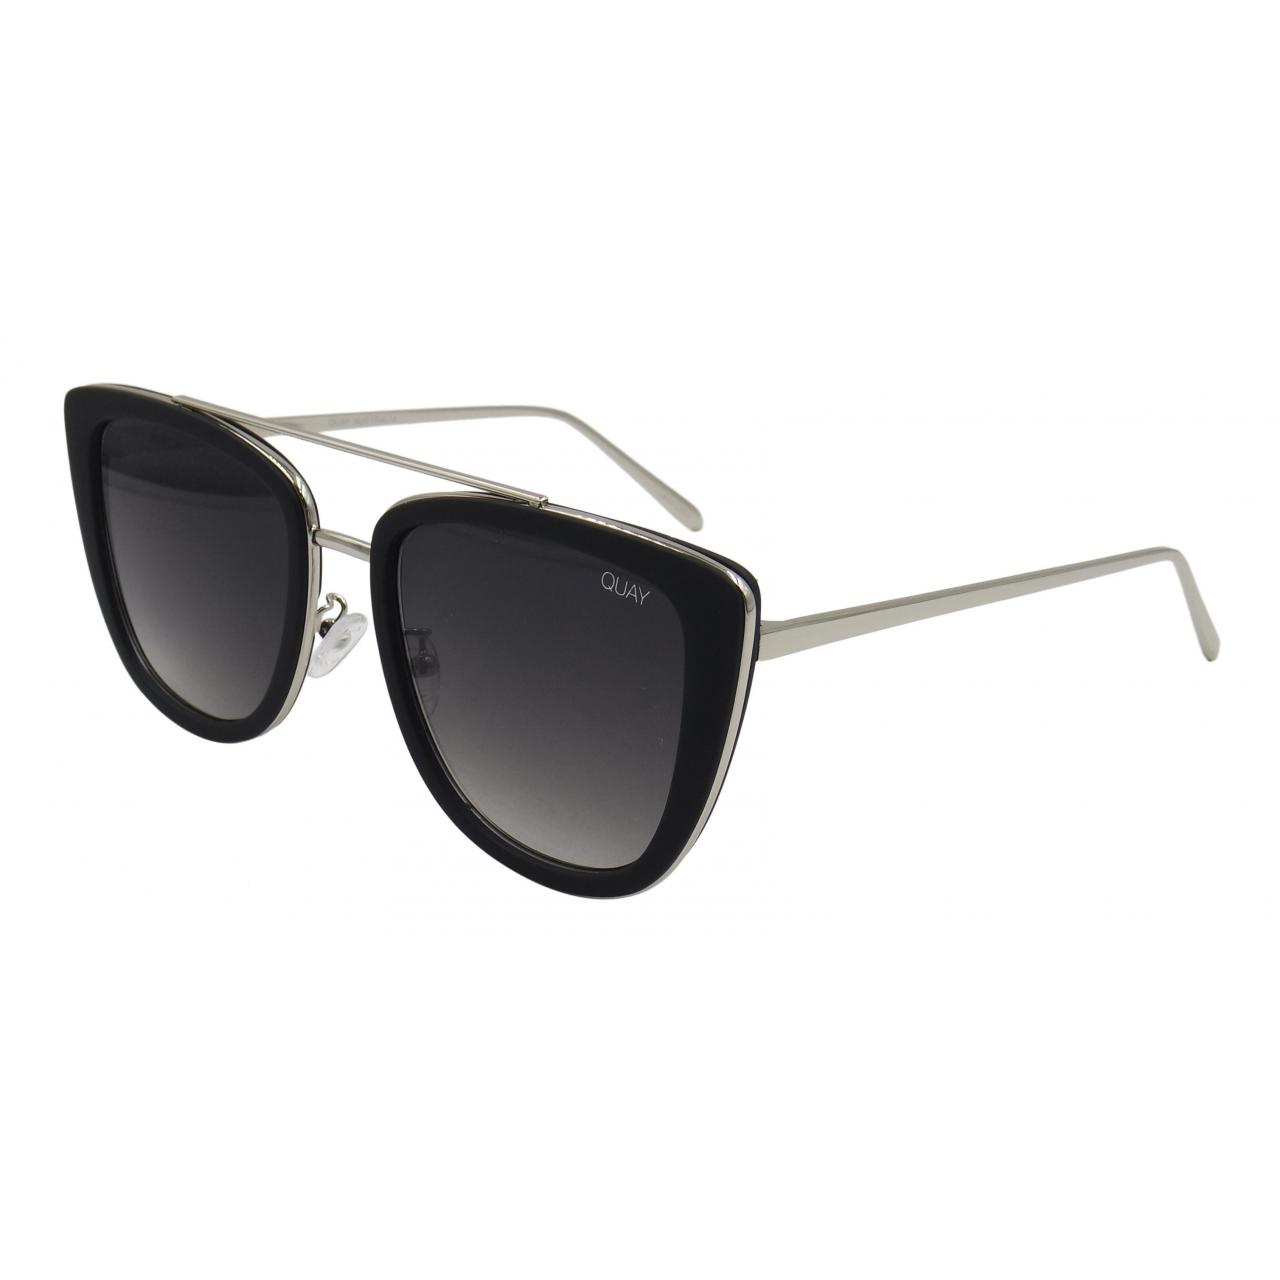 Quality Sunglasses for sale